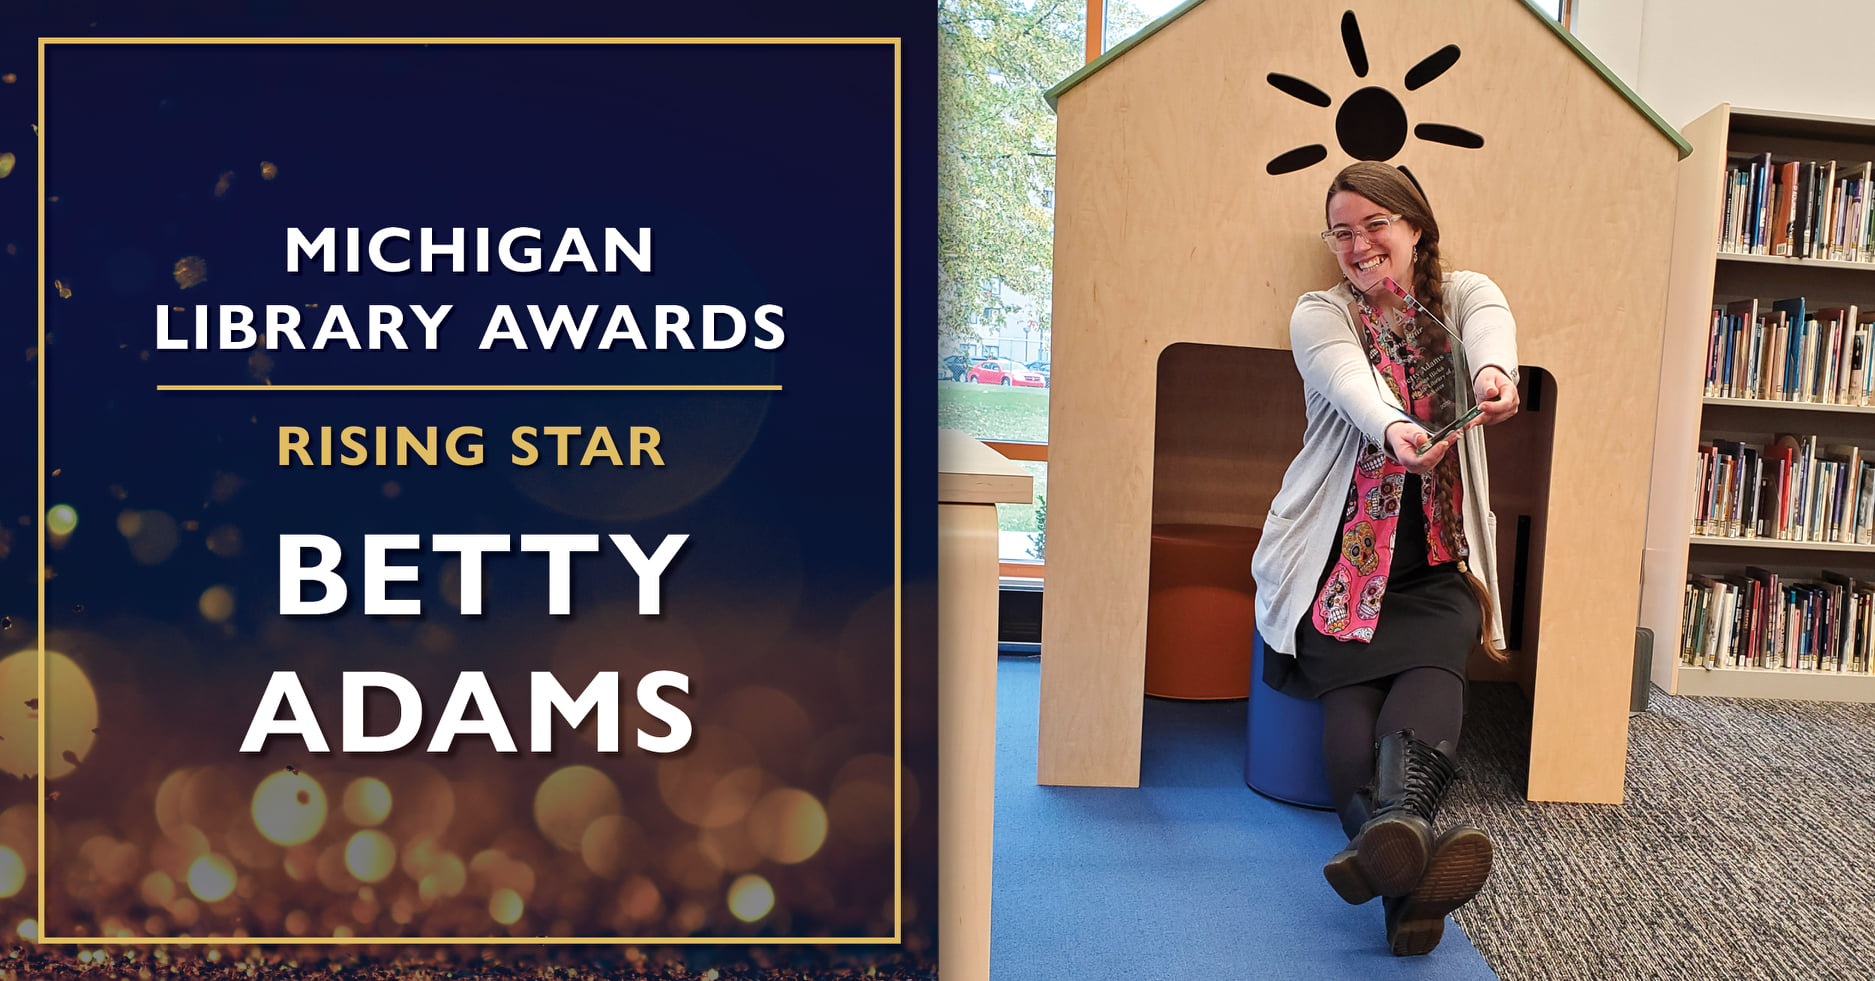 SIS student Betty Adams receives the Rising Star Award from the Michigan Library Association